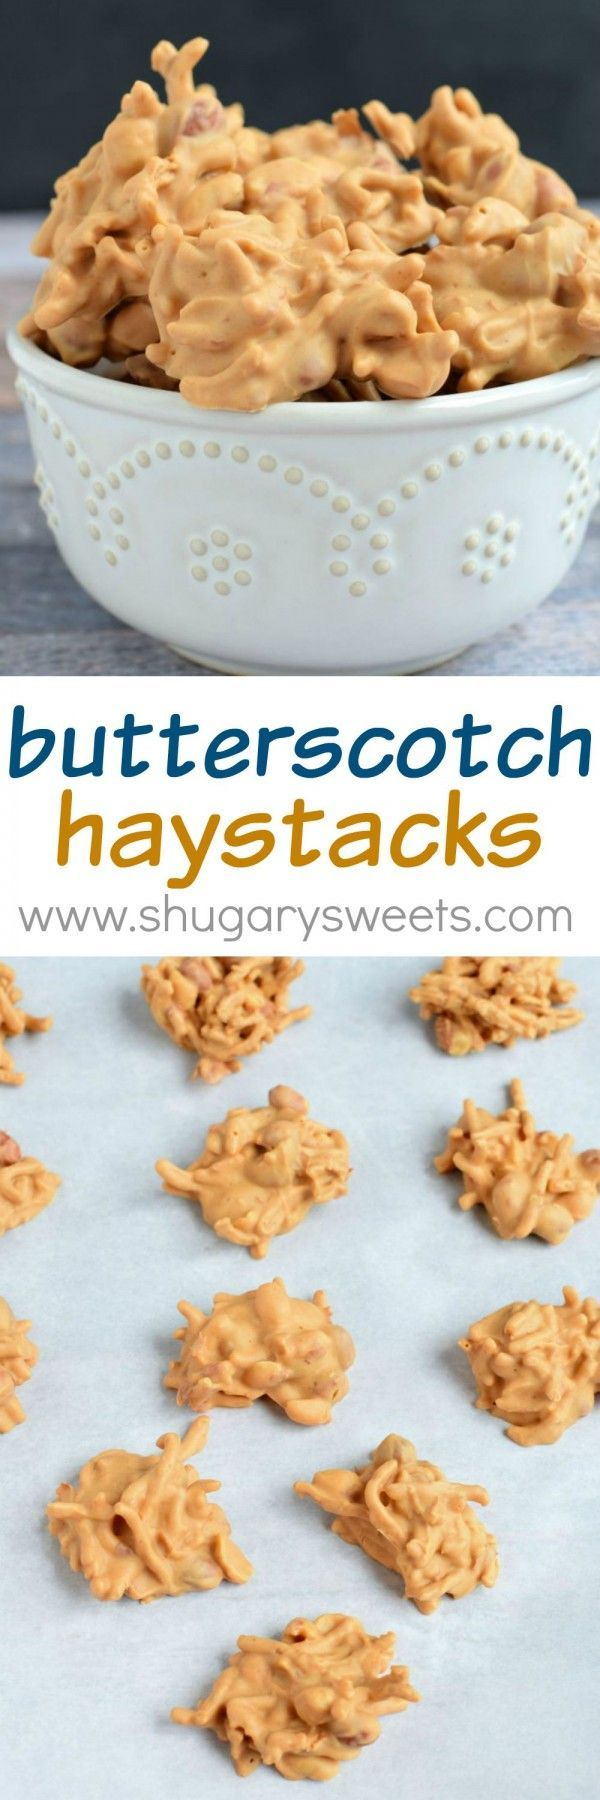 No Bake Haystack Cookies are just the thing to satisfy your intense sweet tooth cravings. Its the ideal recipe for little hands to help, too!